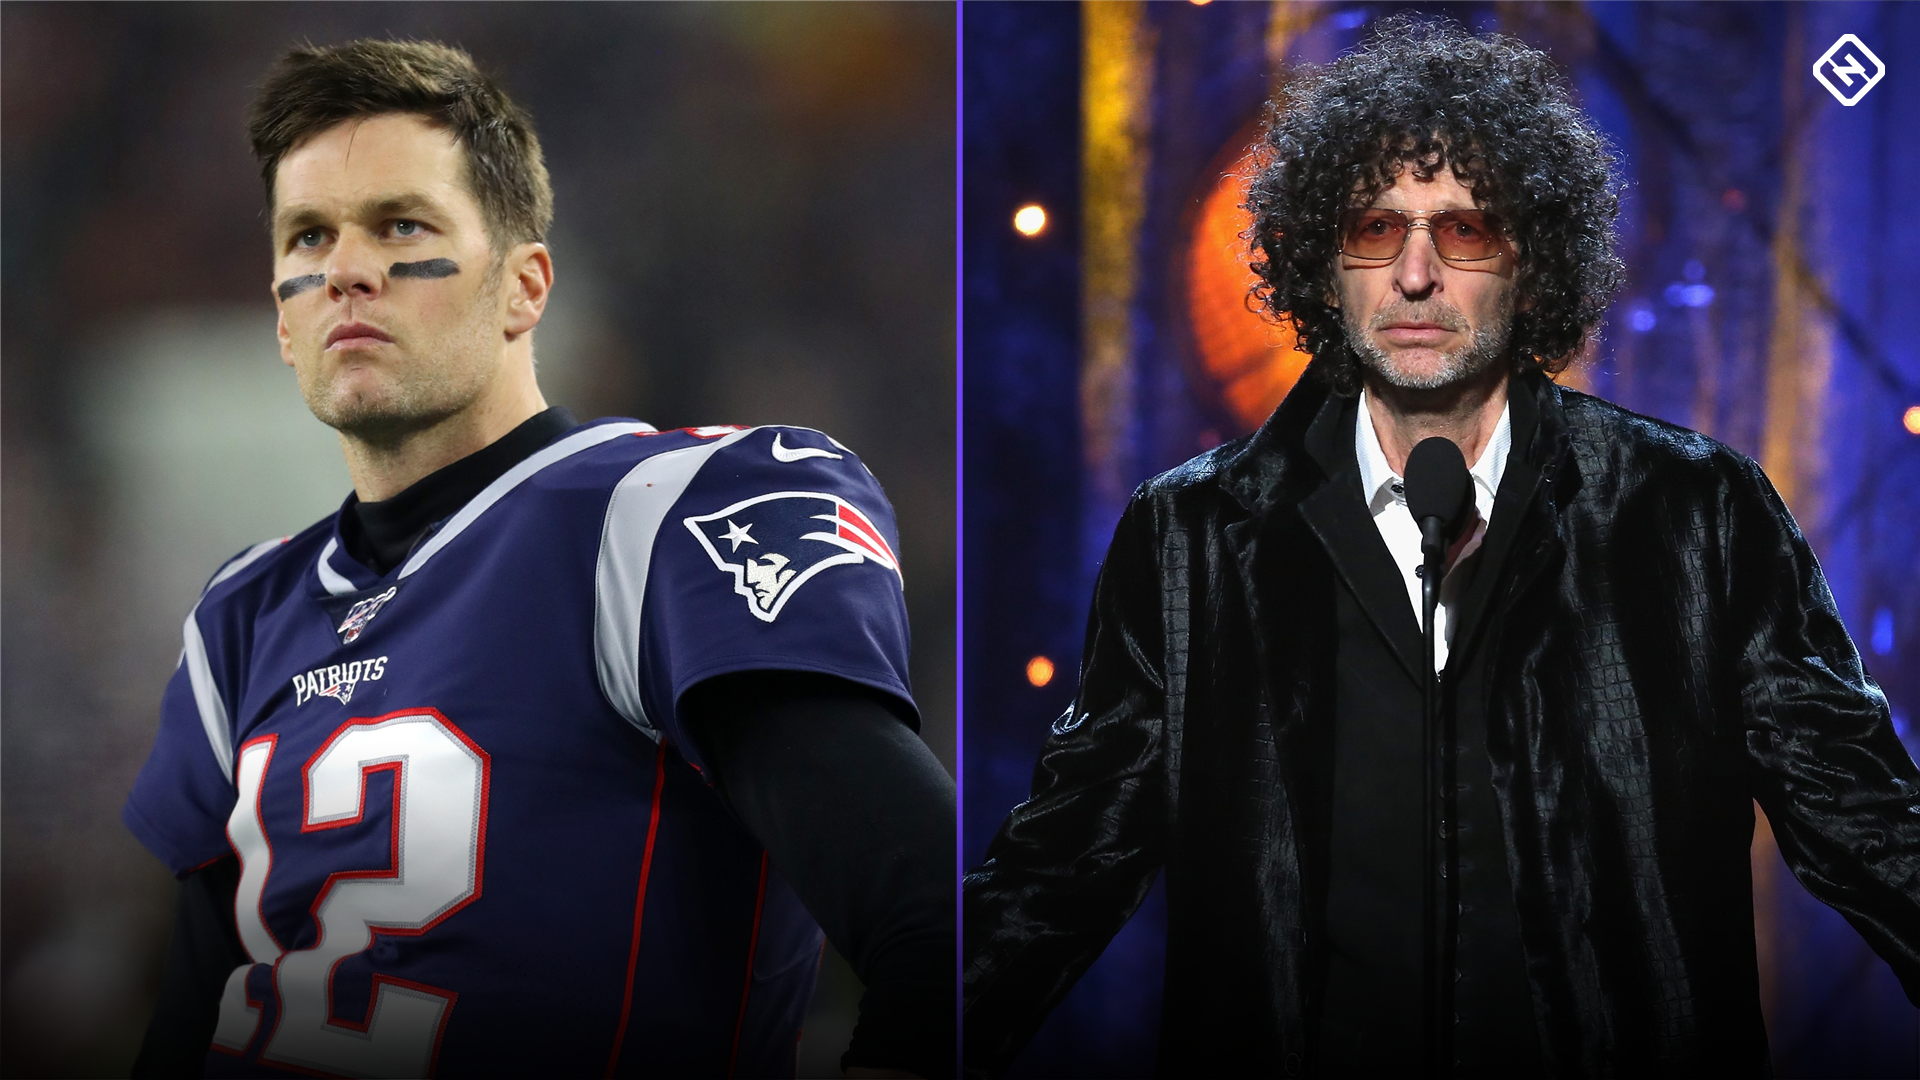 Tom Brady's Howard Stern interview: 10 key revelations on Patriots, Buccaneers and life with Gisele